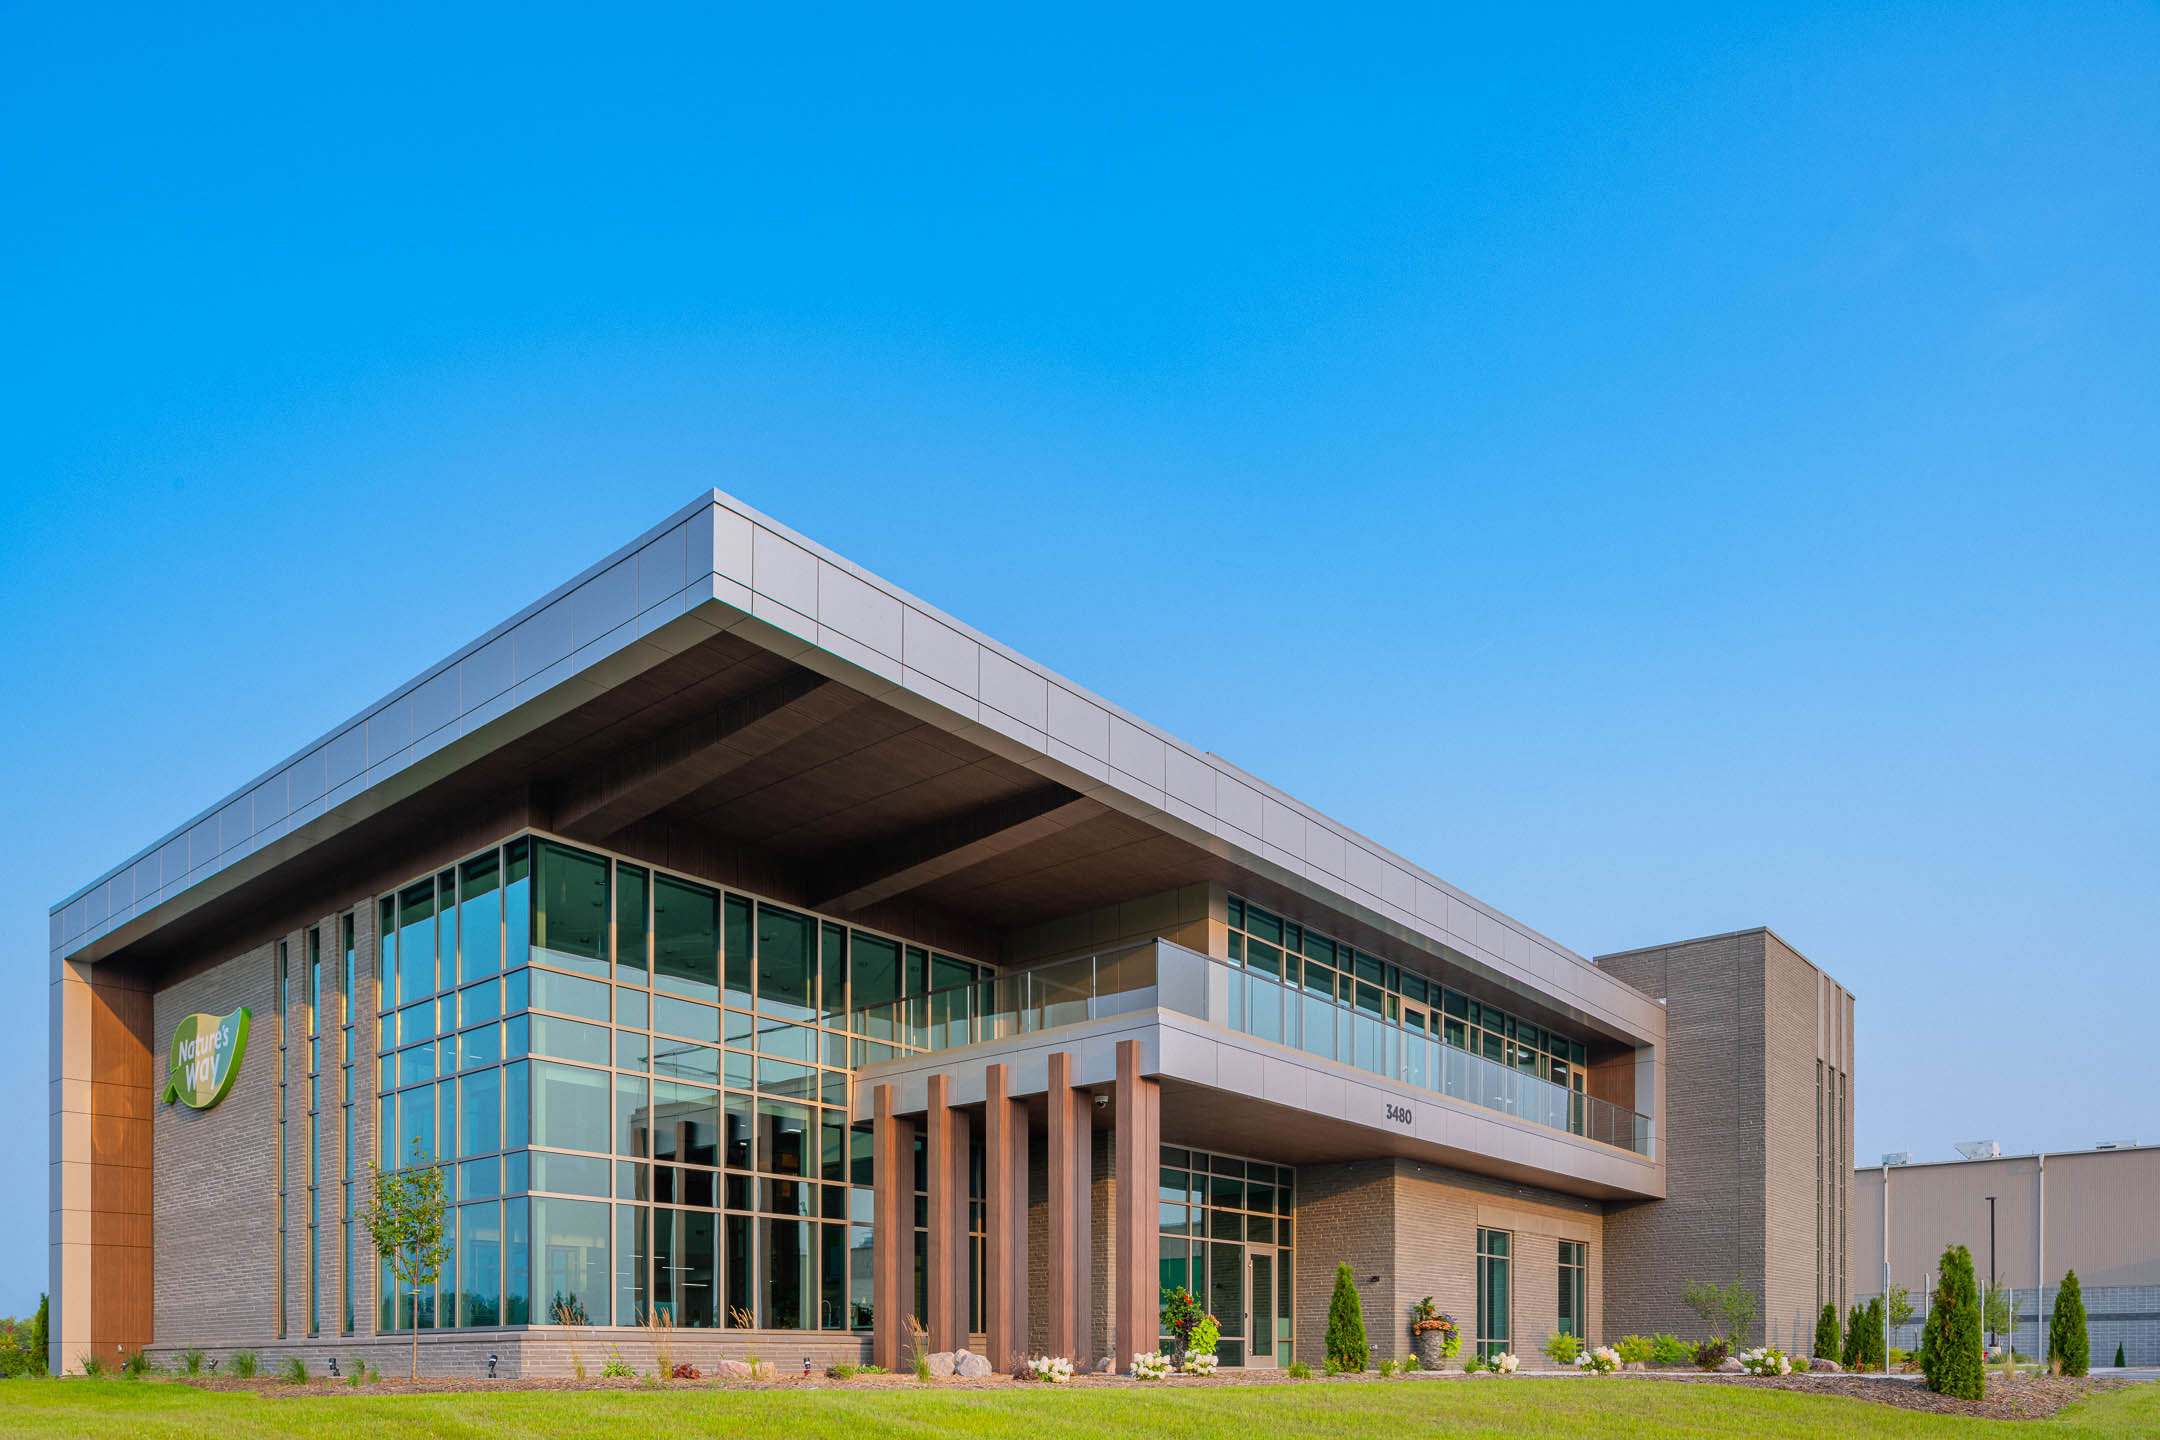 Nature's Way Corporate Office Building Project Green Bay, WI - Planning Design-Build Contractor C.D. Smith Construction Firm